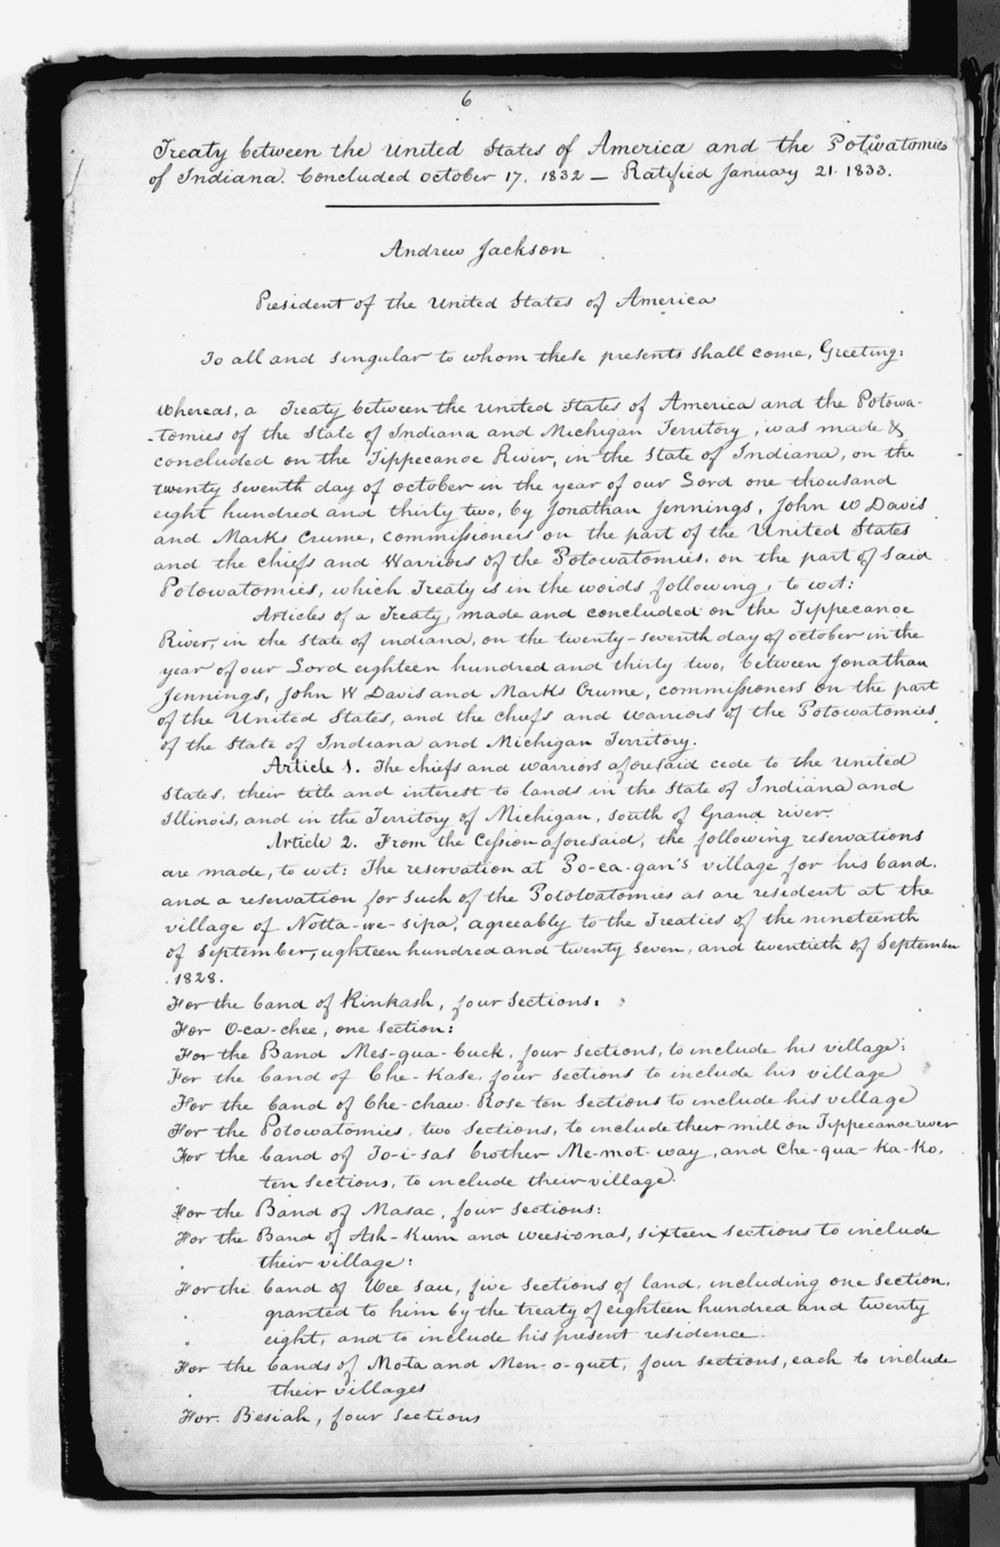 United States Office of Indian Affairs, Central Superintendency, St. Louis, Missouri. Volume 1, Field notes - 6